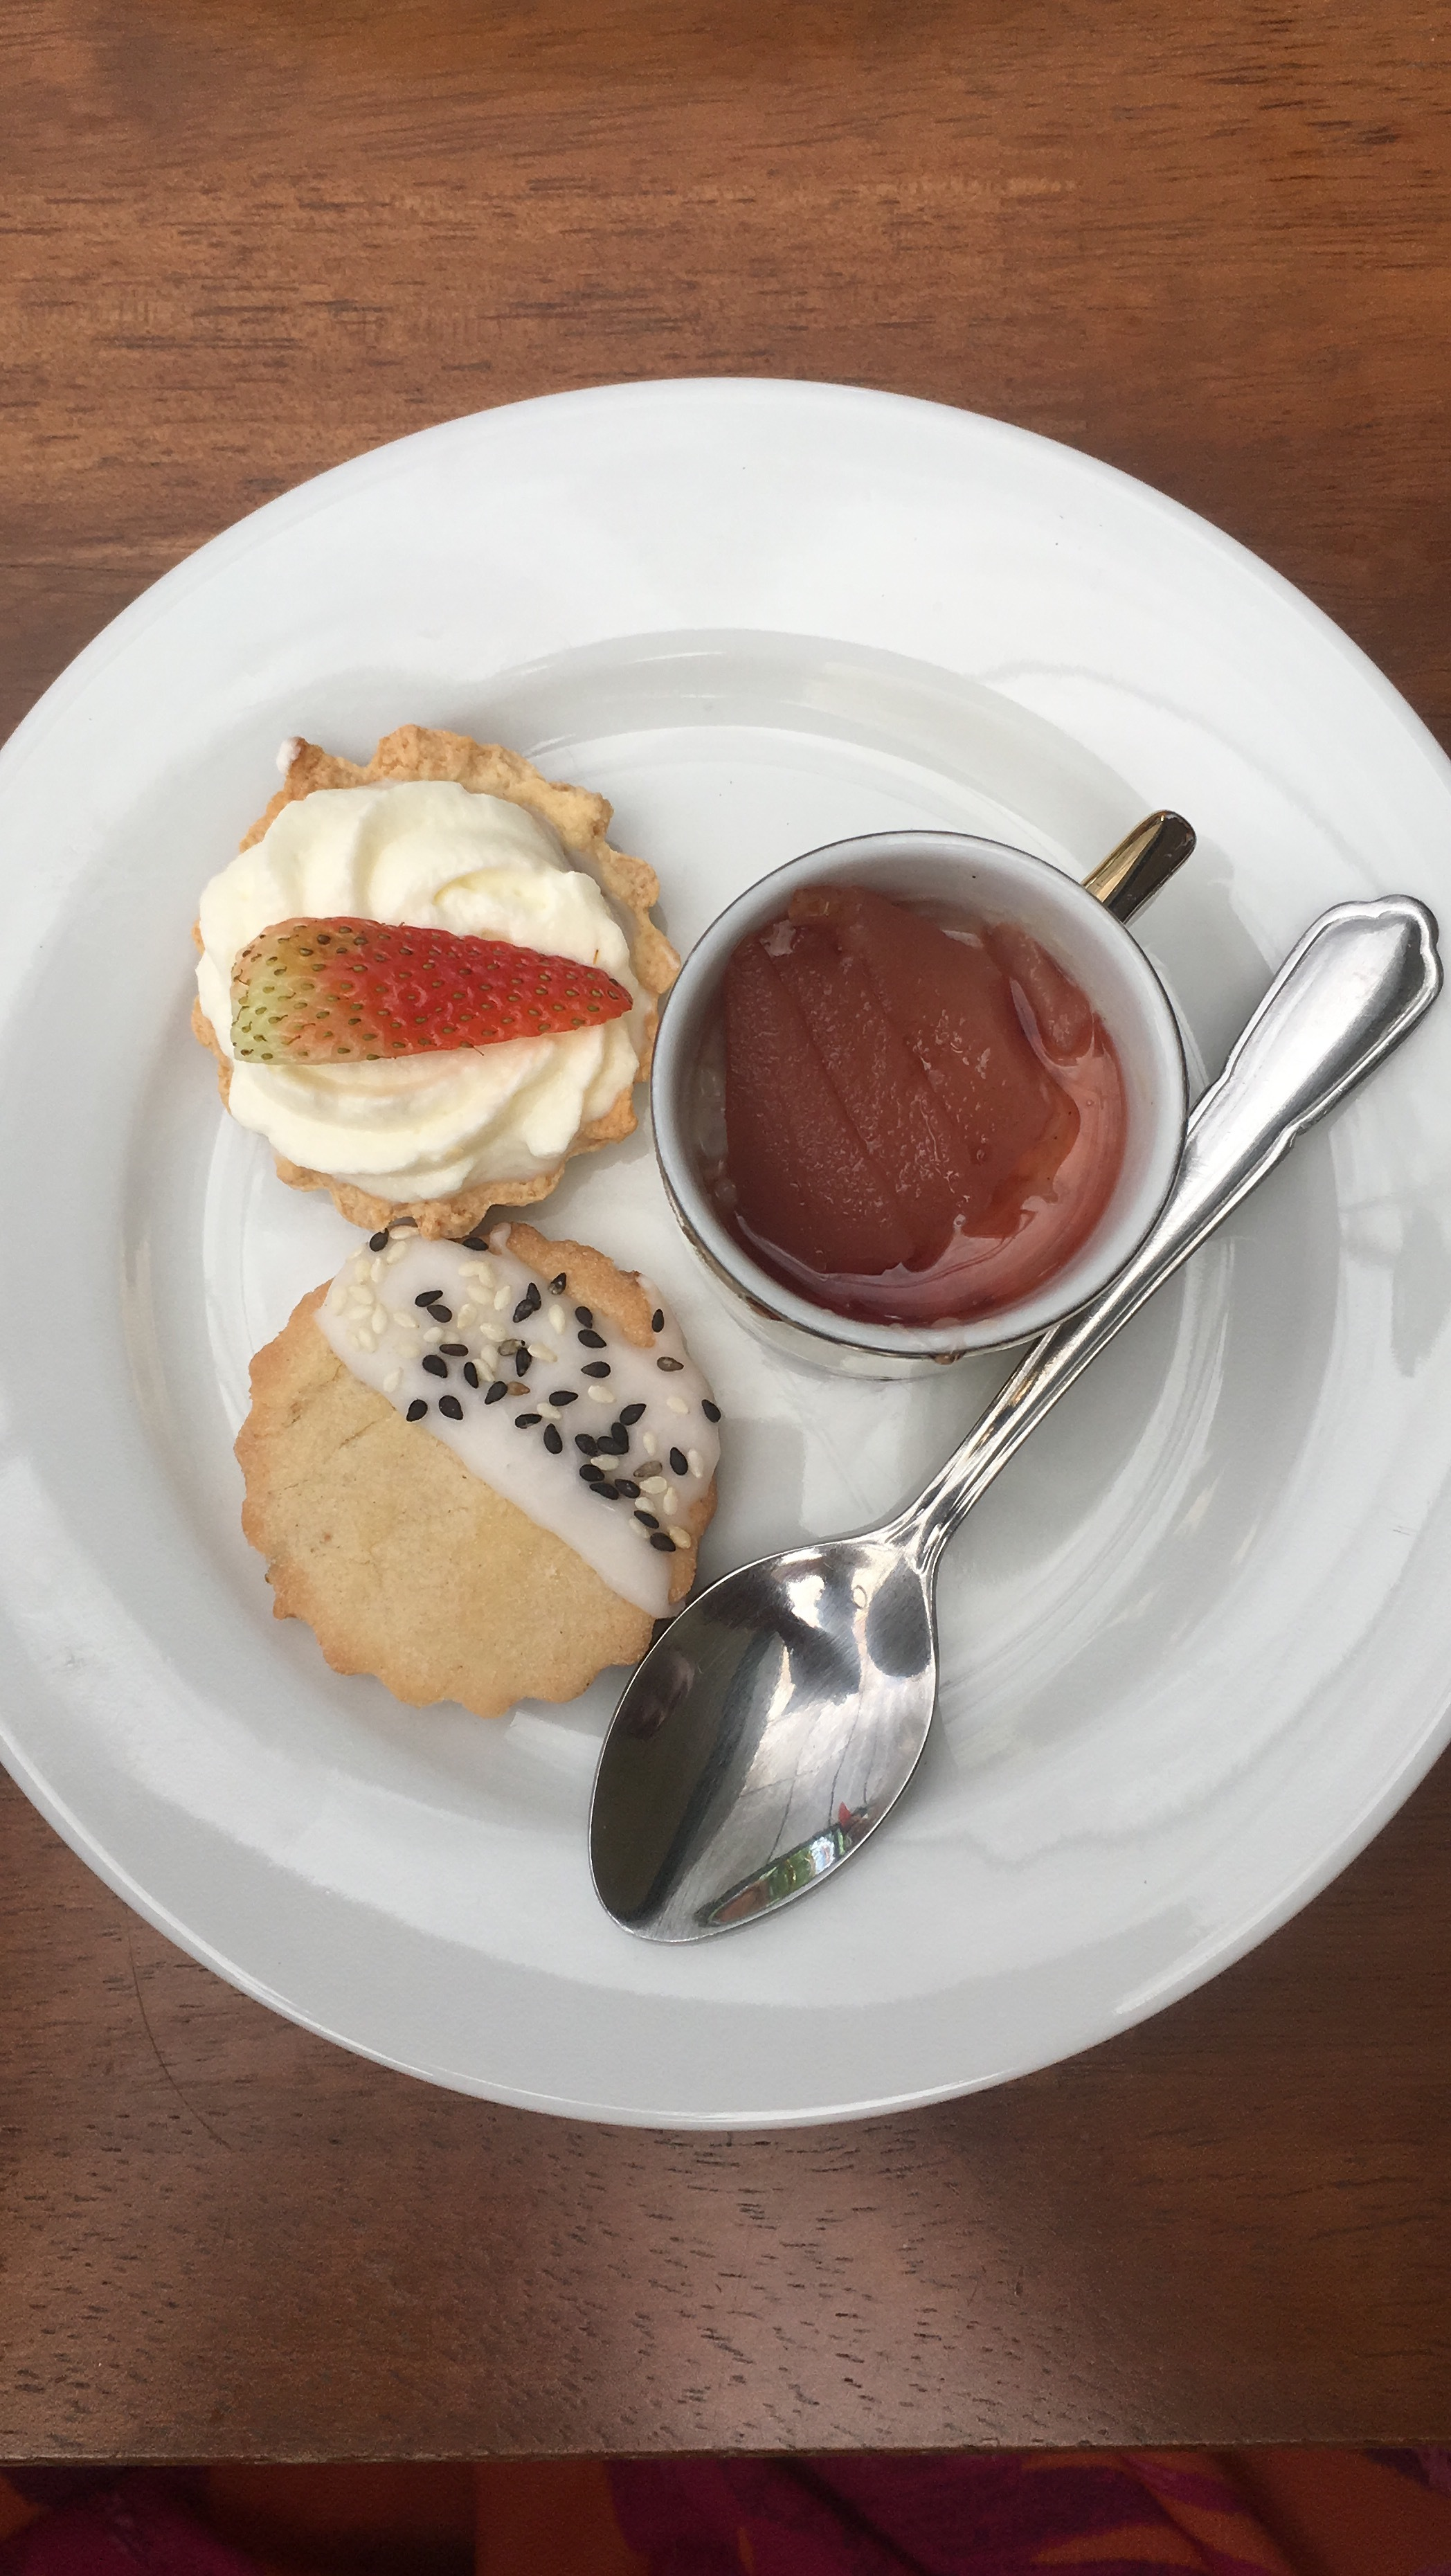 My delicious dessert plate: Spiced cookie, Chocolate mousse tarts topped with fresh strawberries and rice pudding with poached pears in white wine and cardamom.